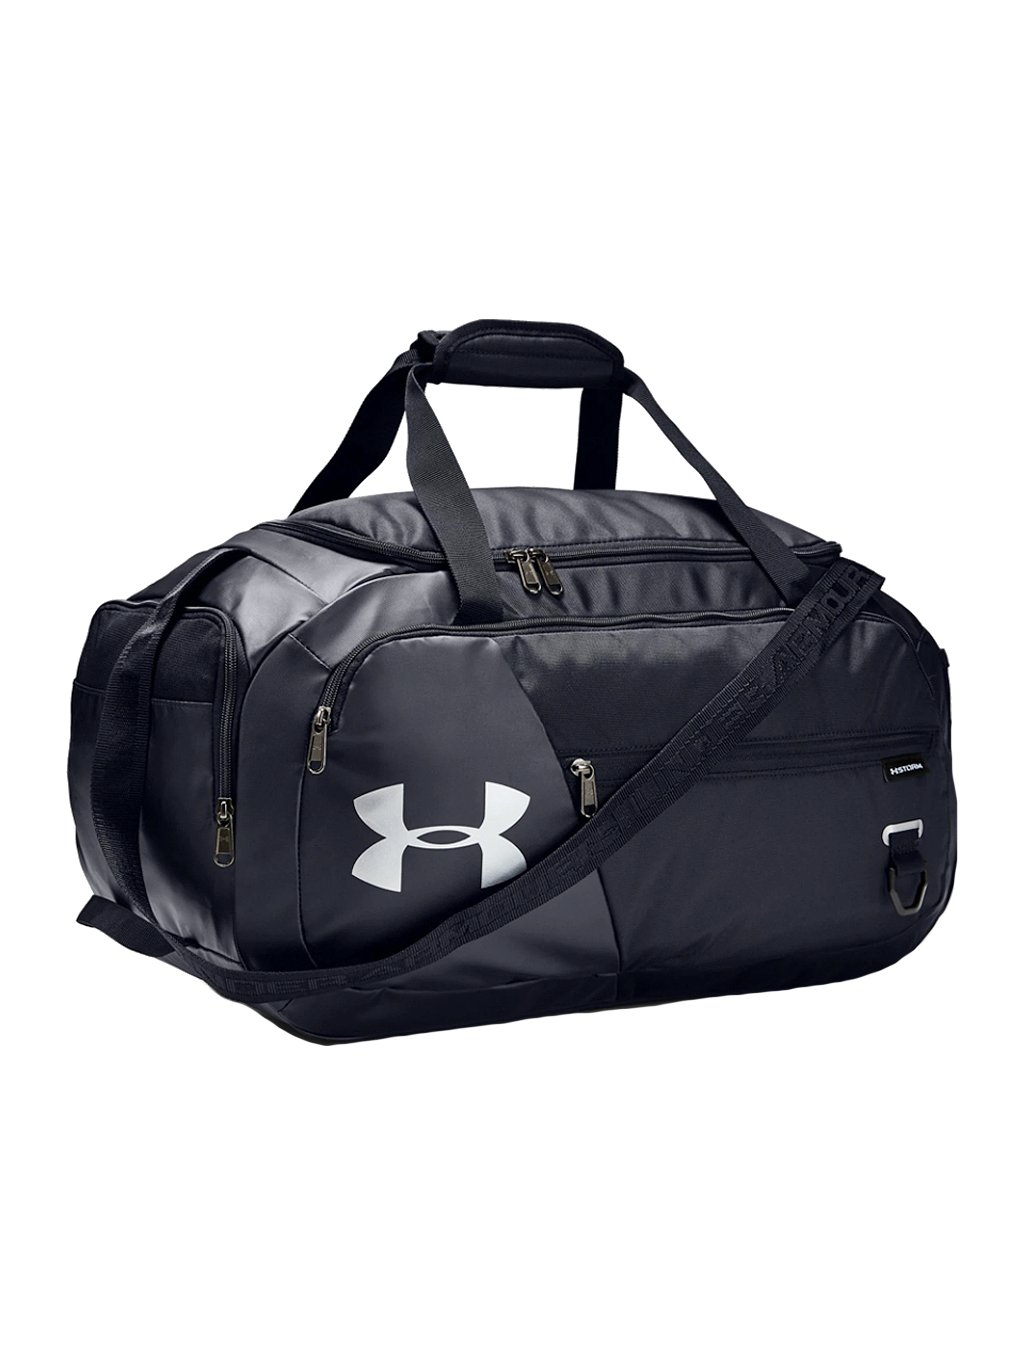 UNDER ARMOUR UNDENIABLE DUFFEL 4.0 SM 1342656-001